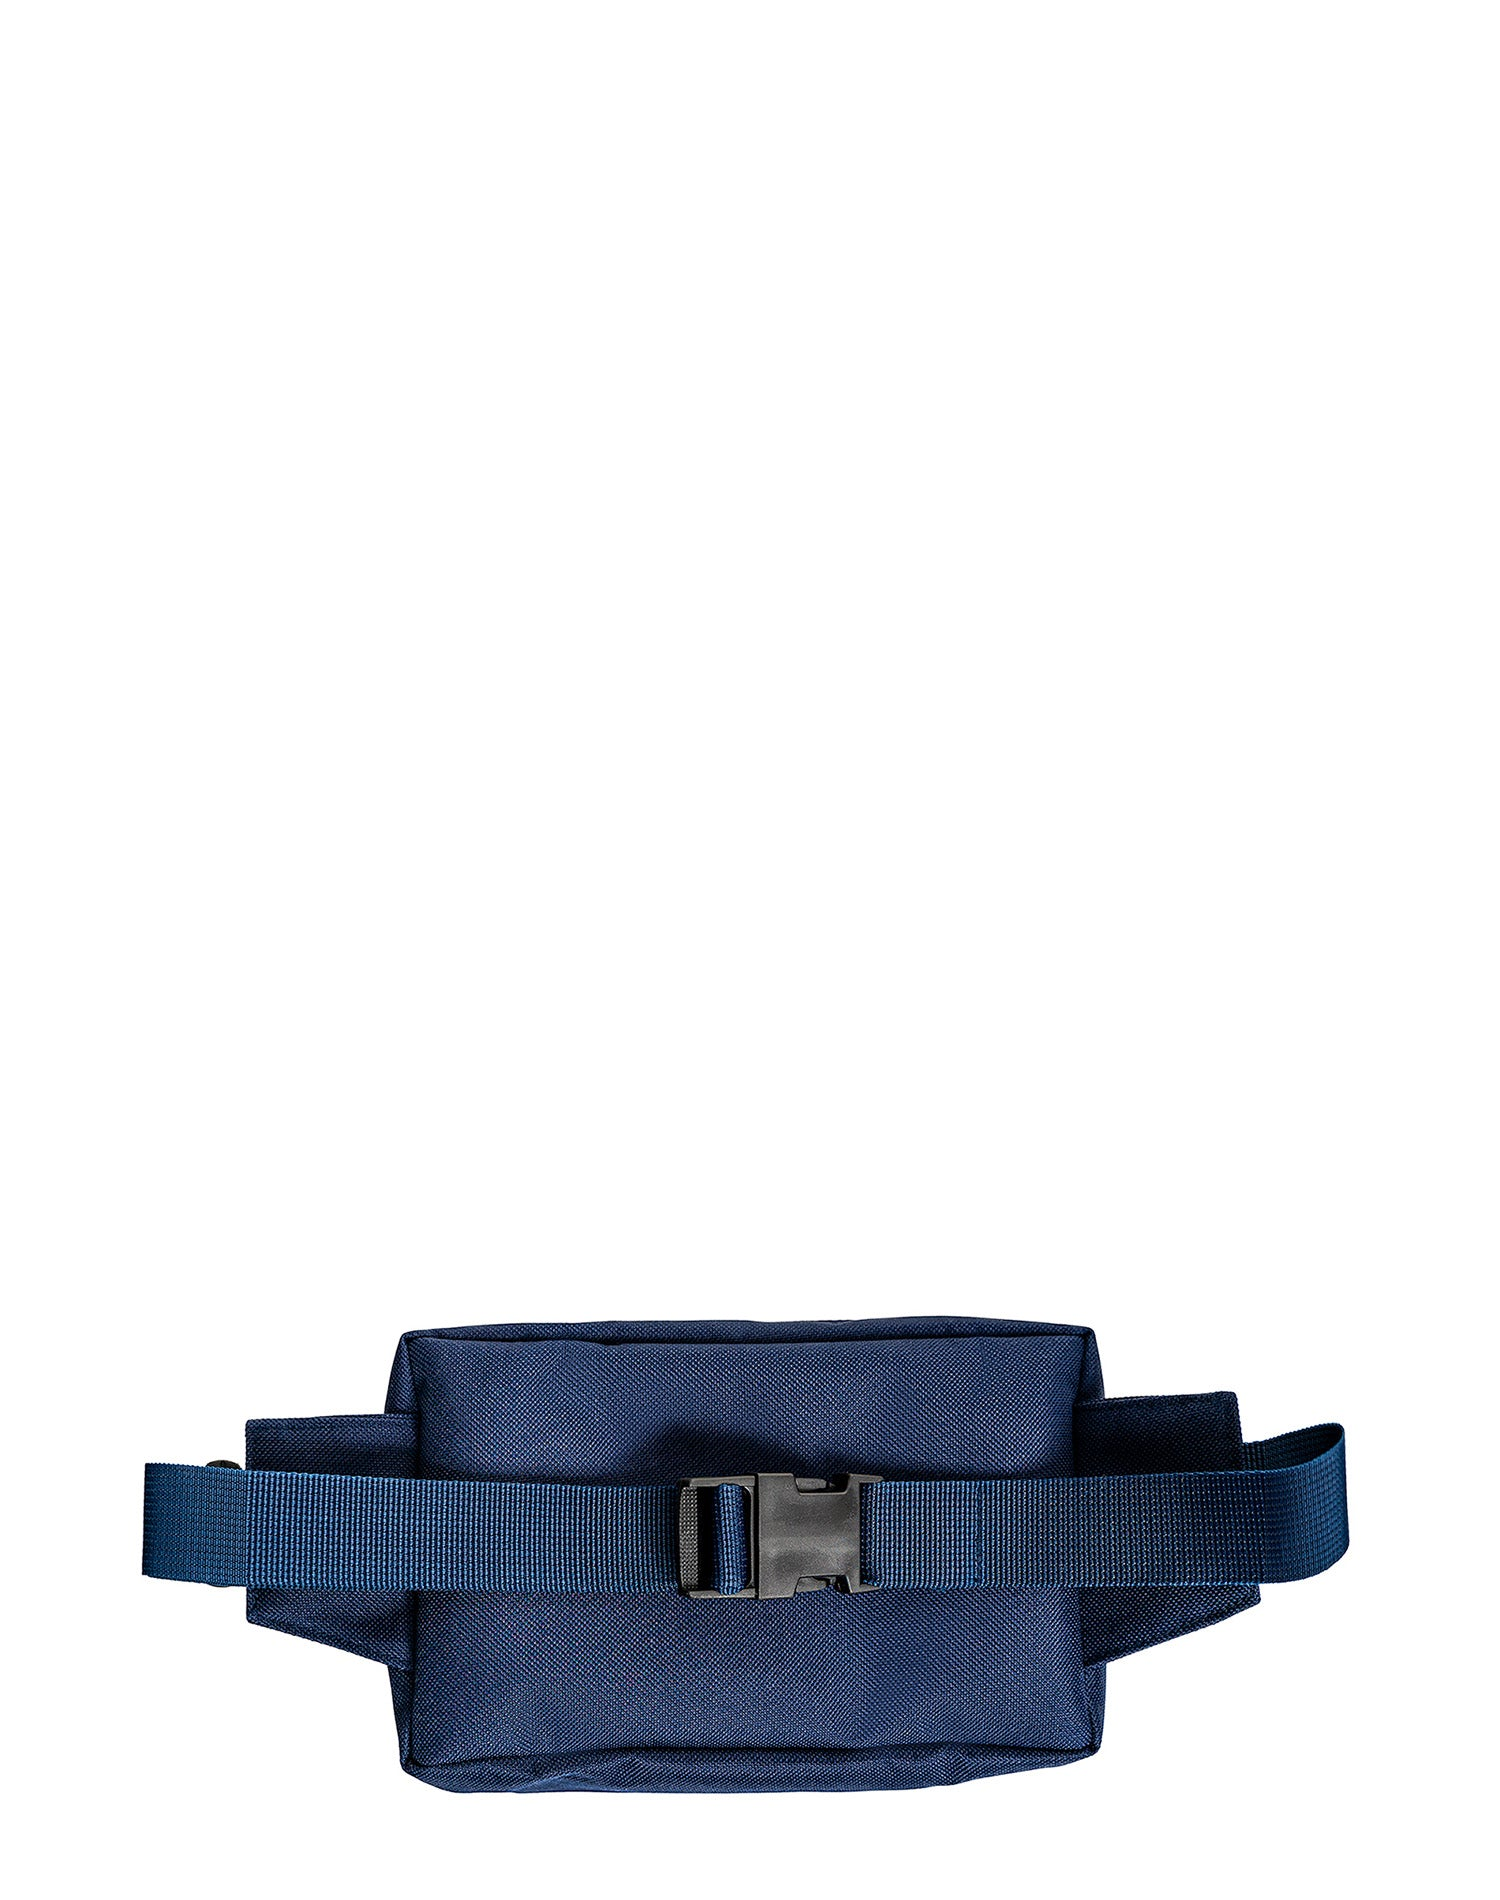 Indigo Blast Canvas Tool Belt Sling Bag.紅藍色帆布斜揹腰包